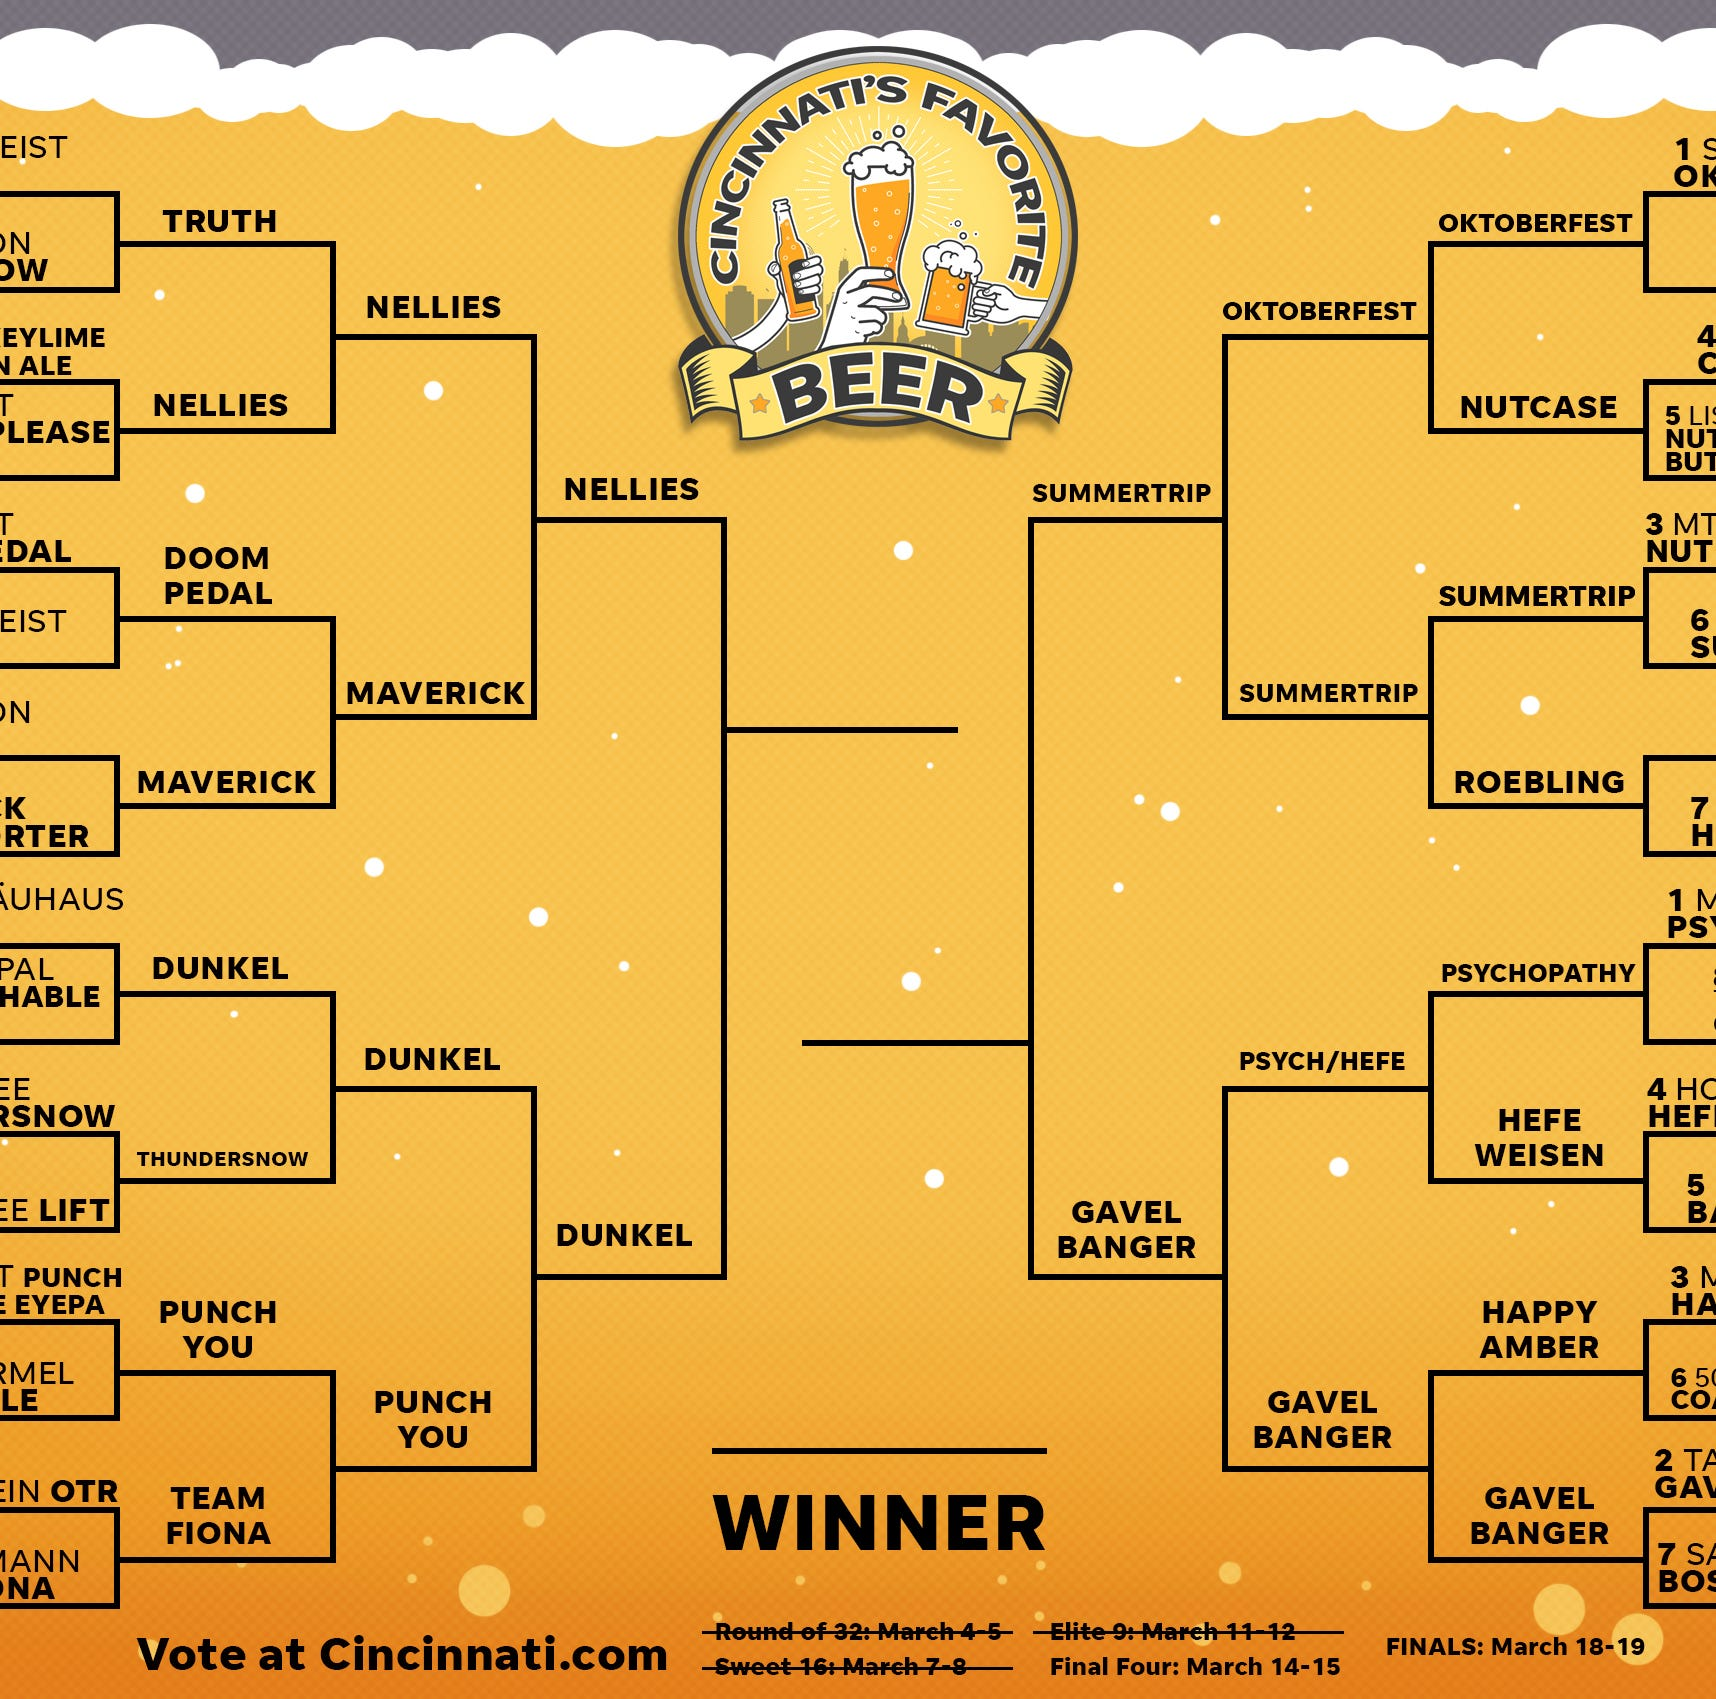 Final Four voting closes Friday night for Cincinnati's Favorite Beer championship